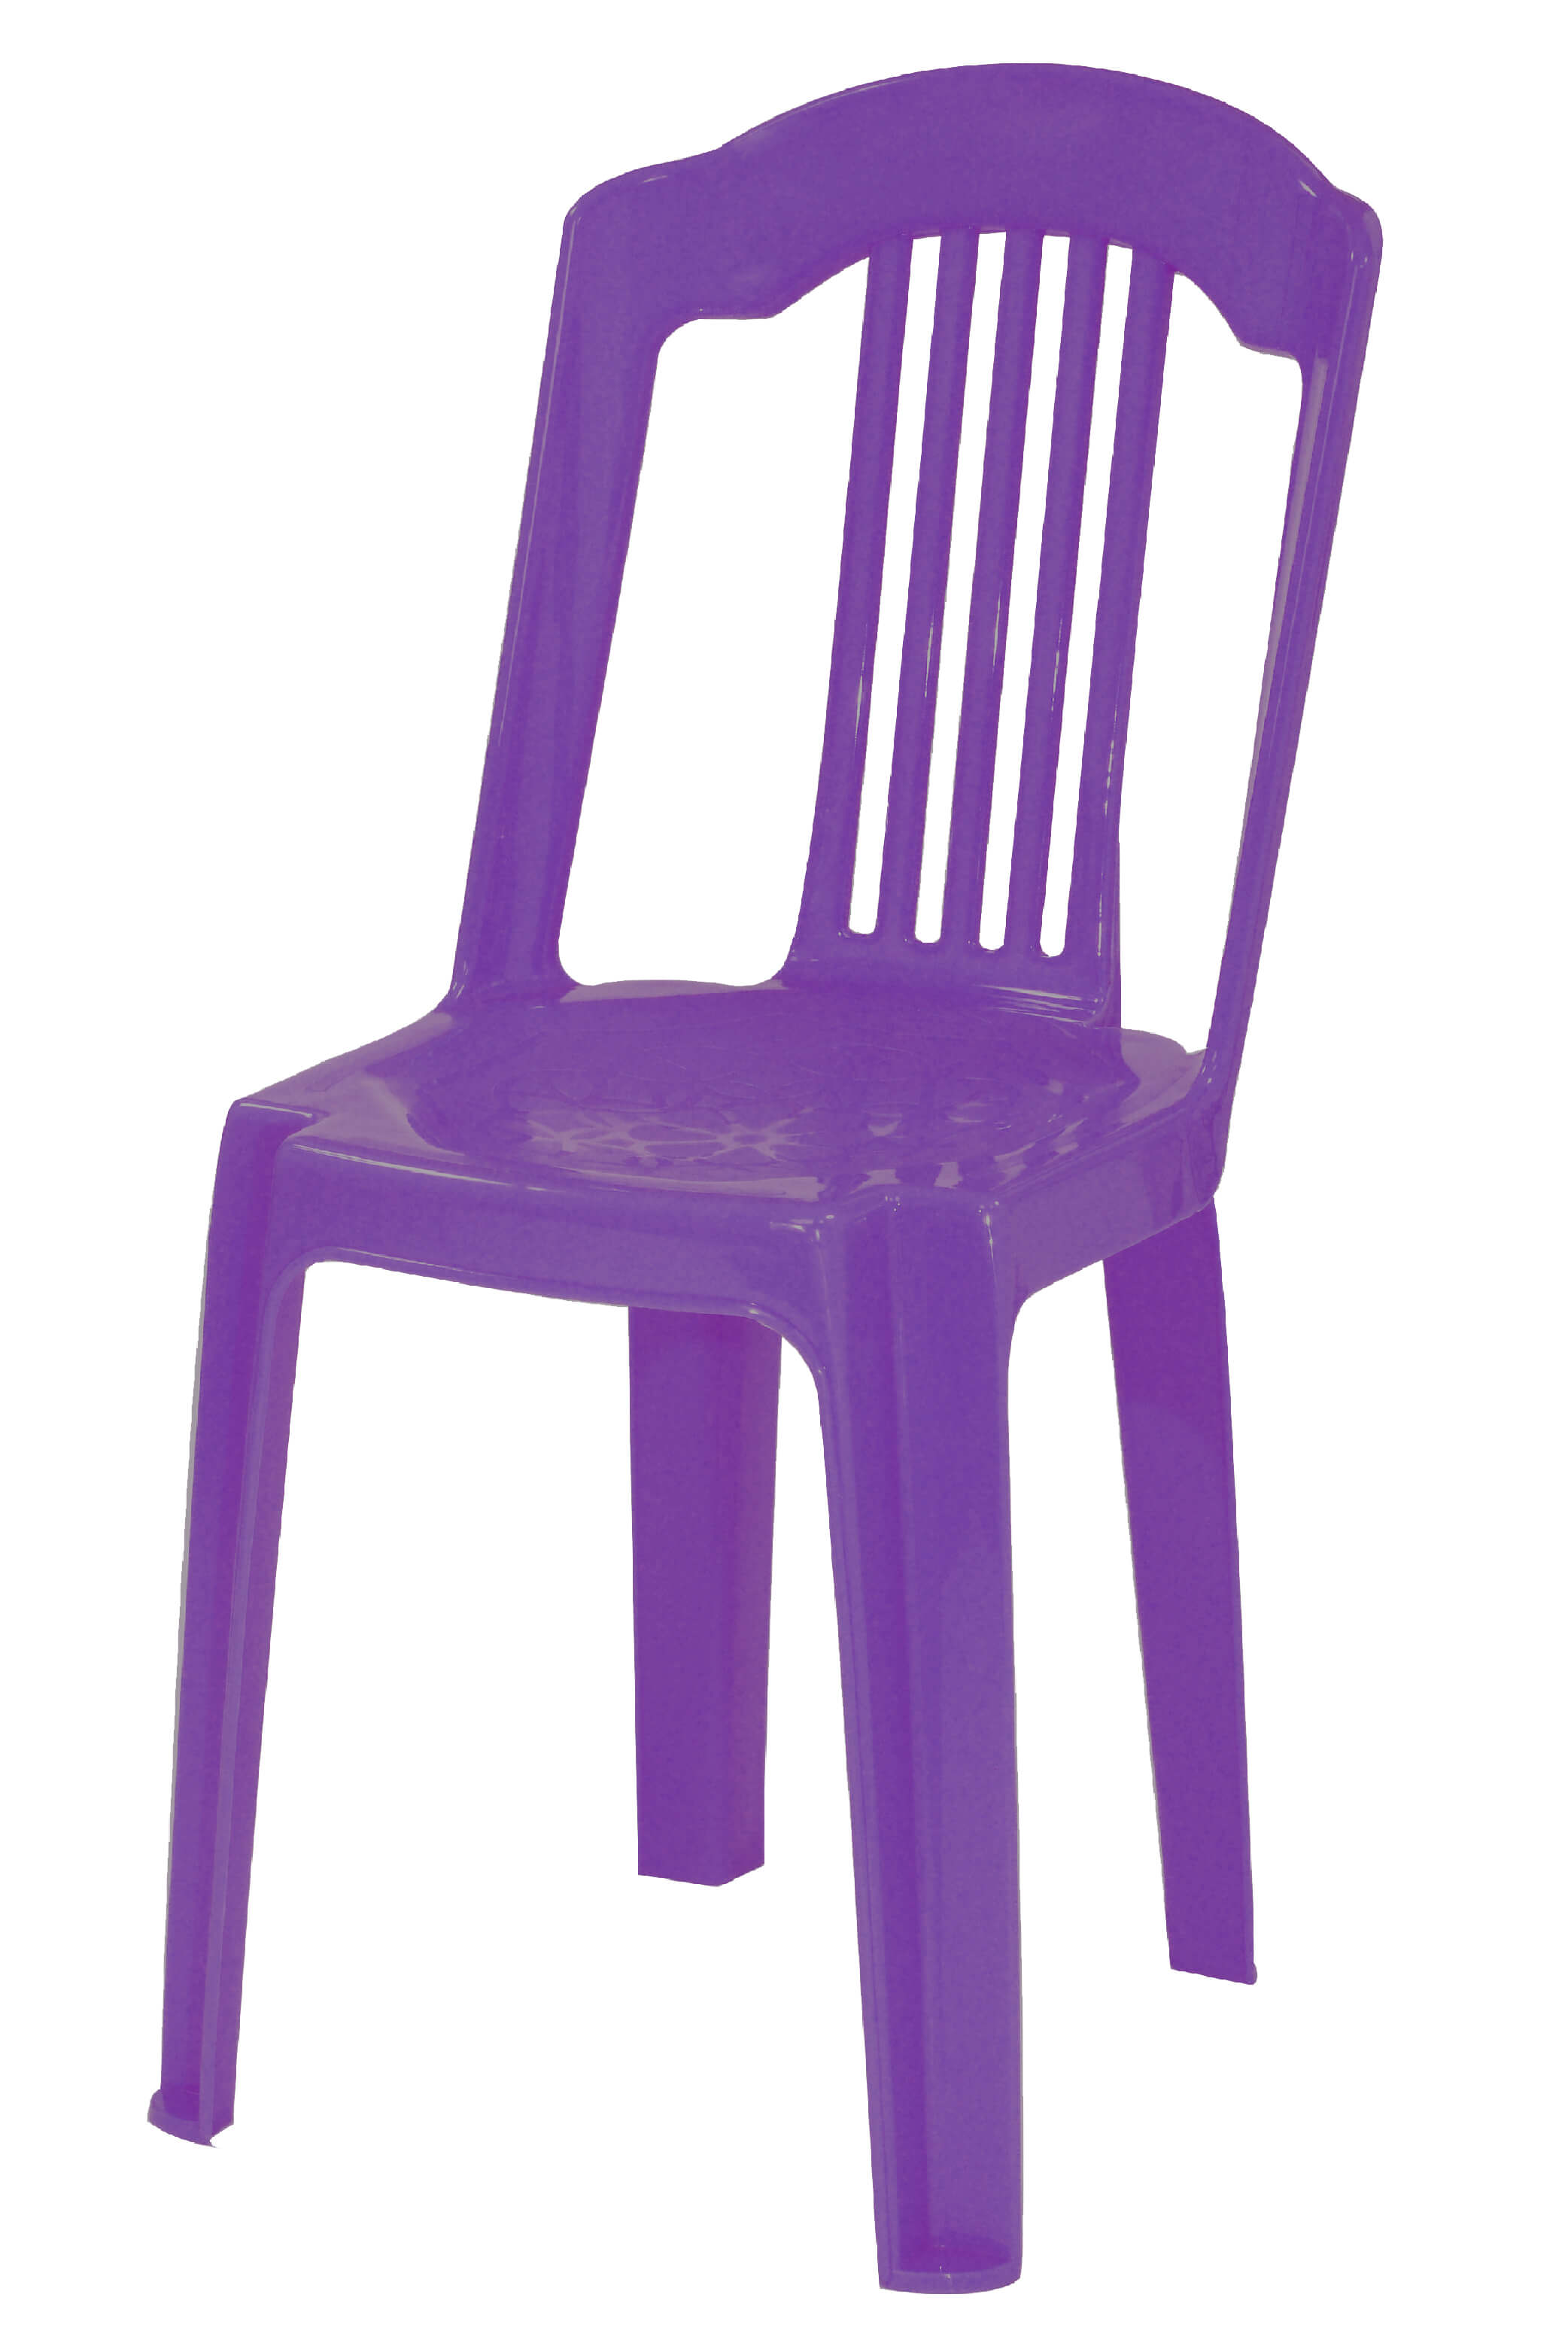 Large 5 - Bar Chair